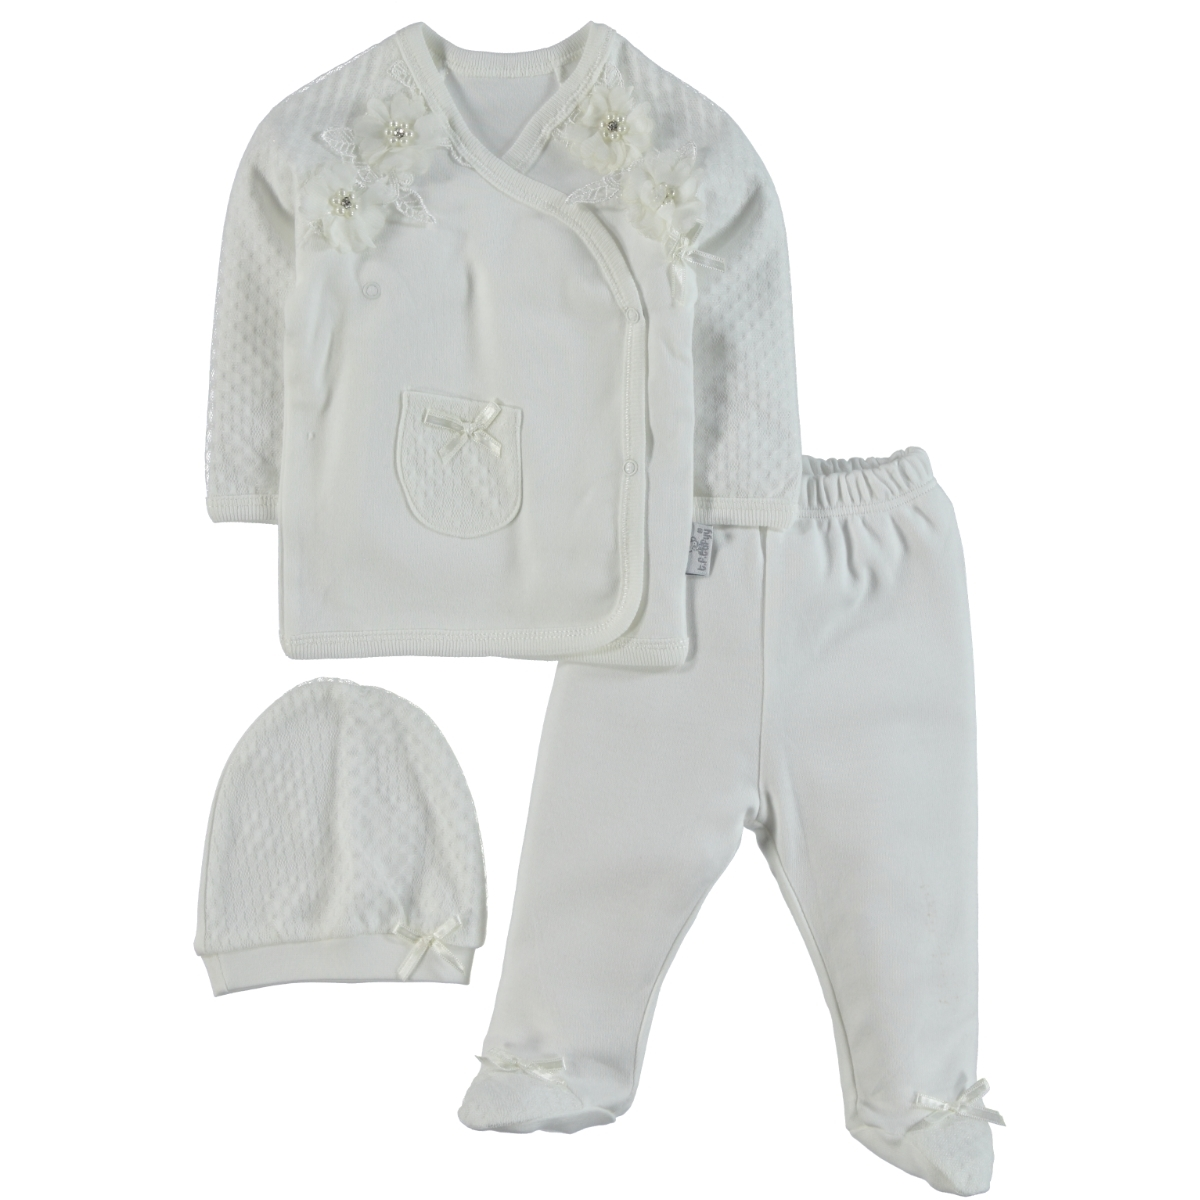 T.F.Taffy Taffy Baby Girl Suit Combed Cotton Ecru 0-3 Months